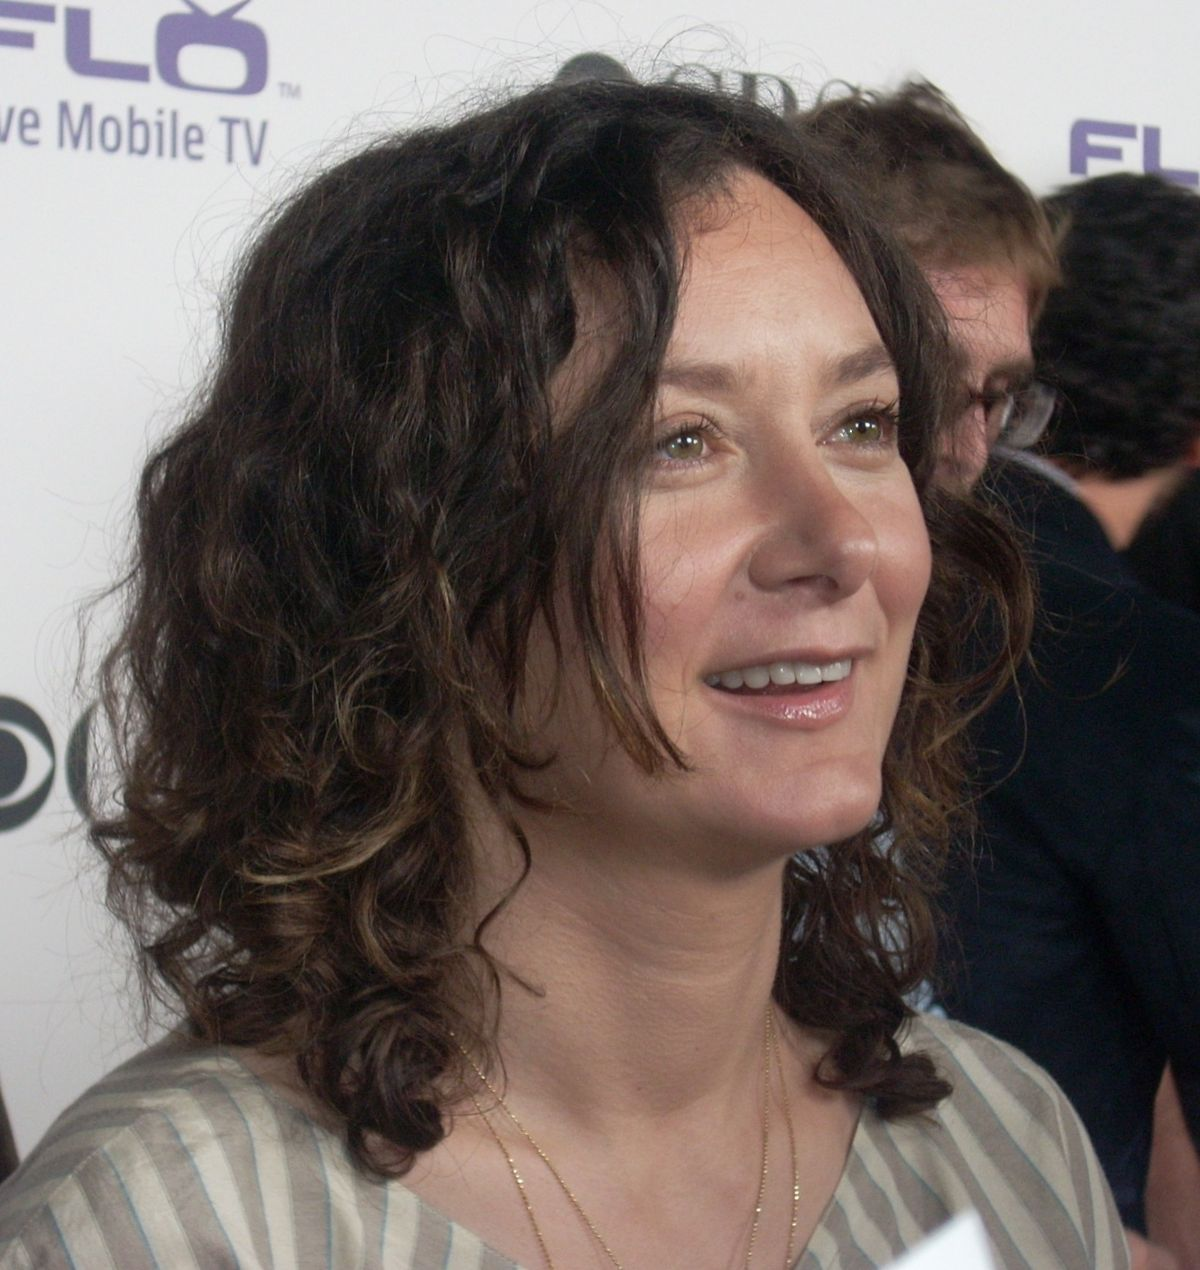 Sara Gilbert nude (34 photos), Topless, Paparazzi, Feet, cameltoe 2015